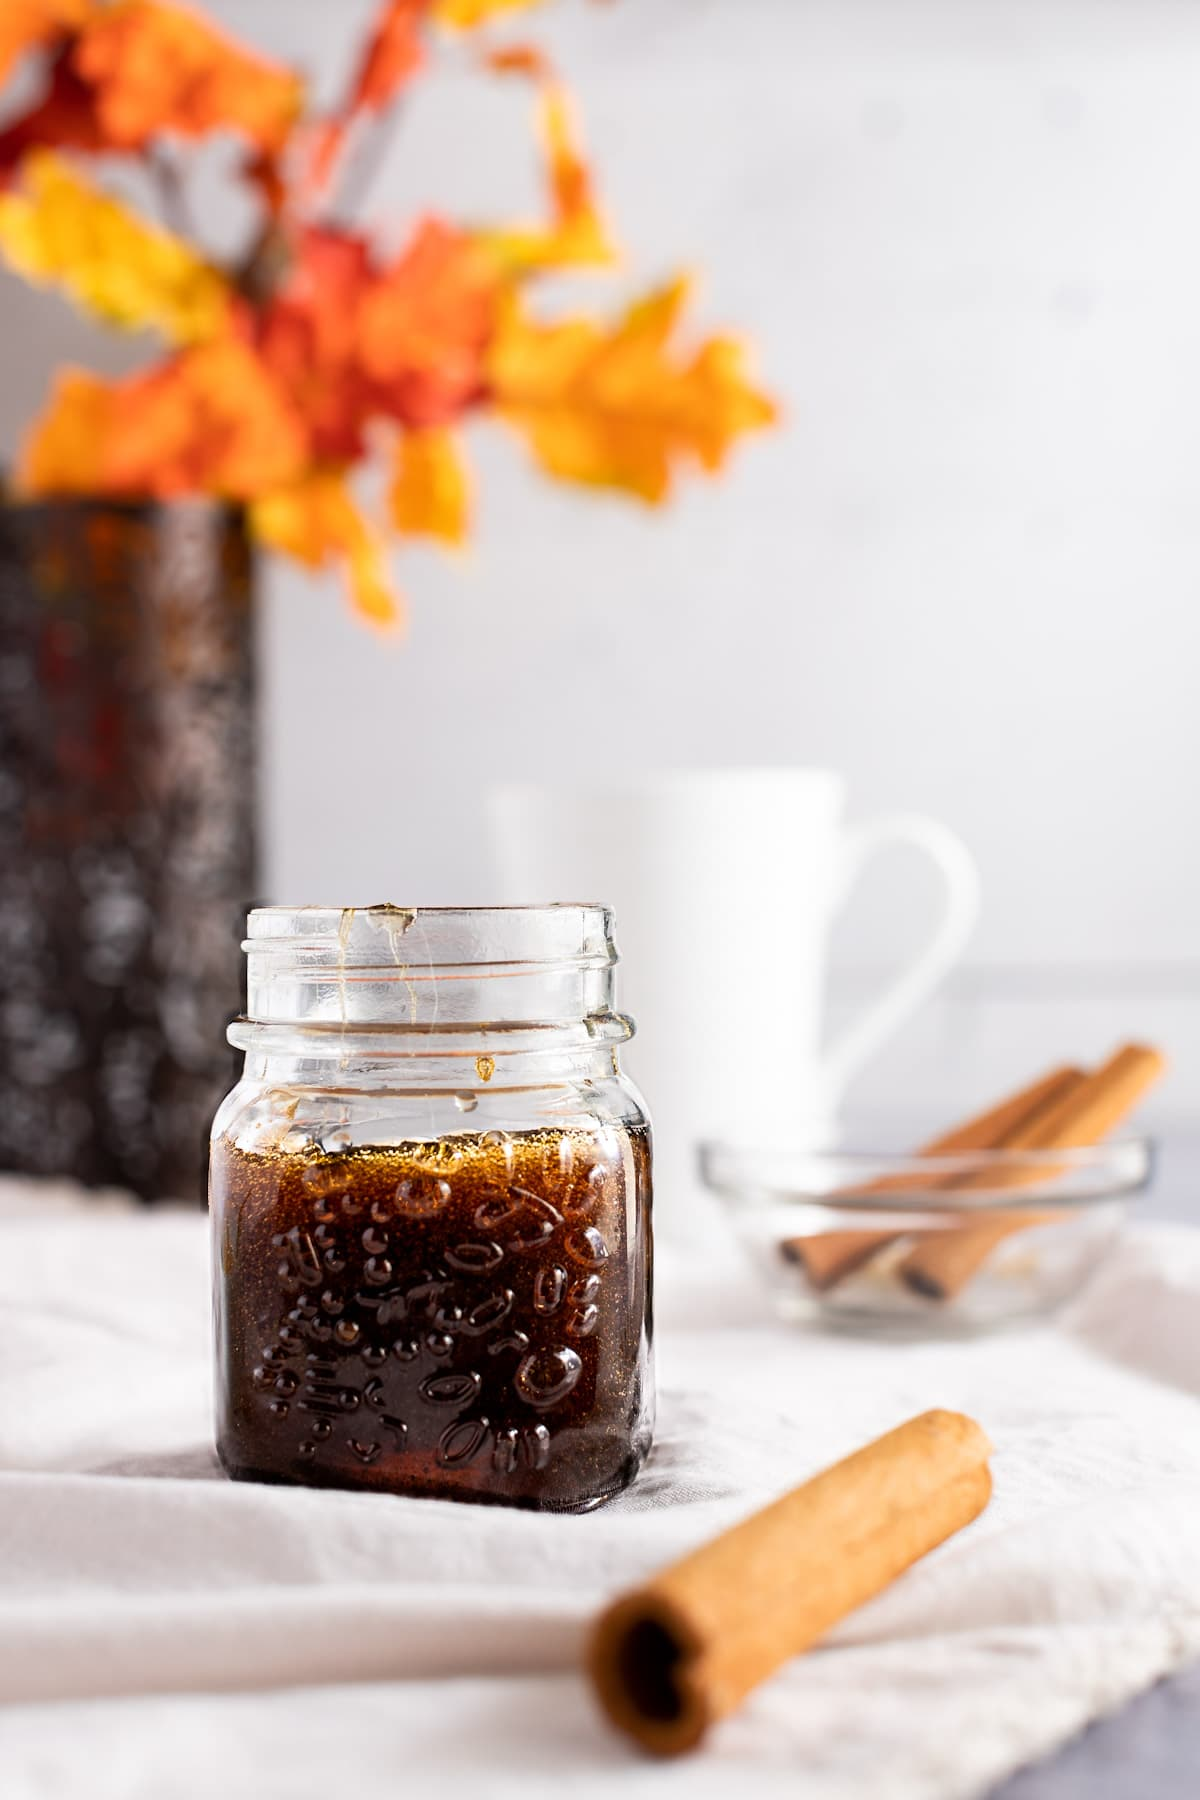 Glass jar of brown syrup, next to cinnamon sticks, with fall leaves in the background.